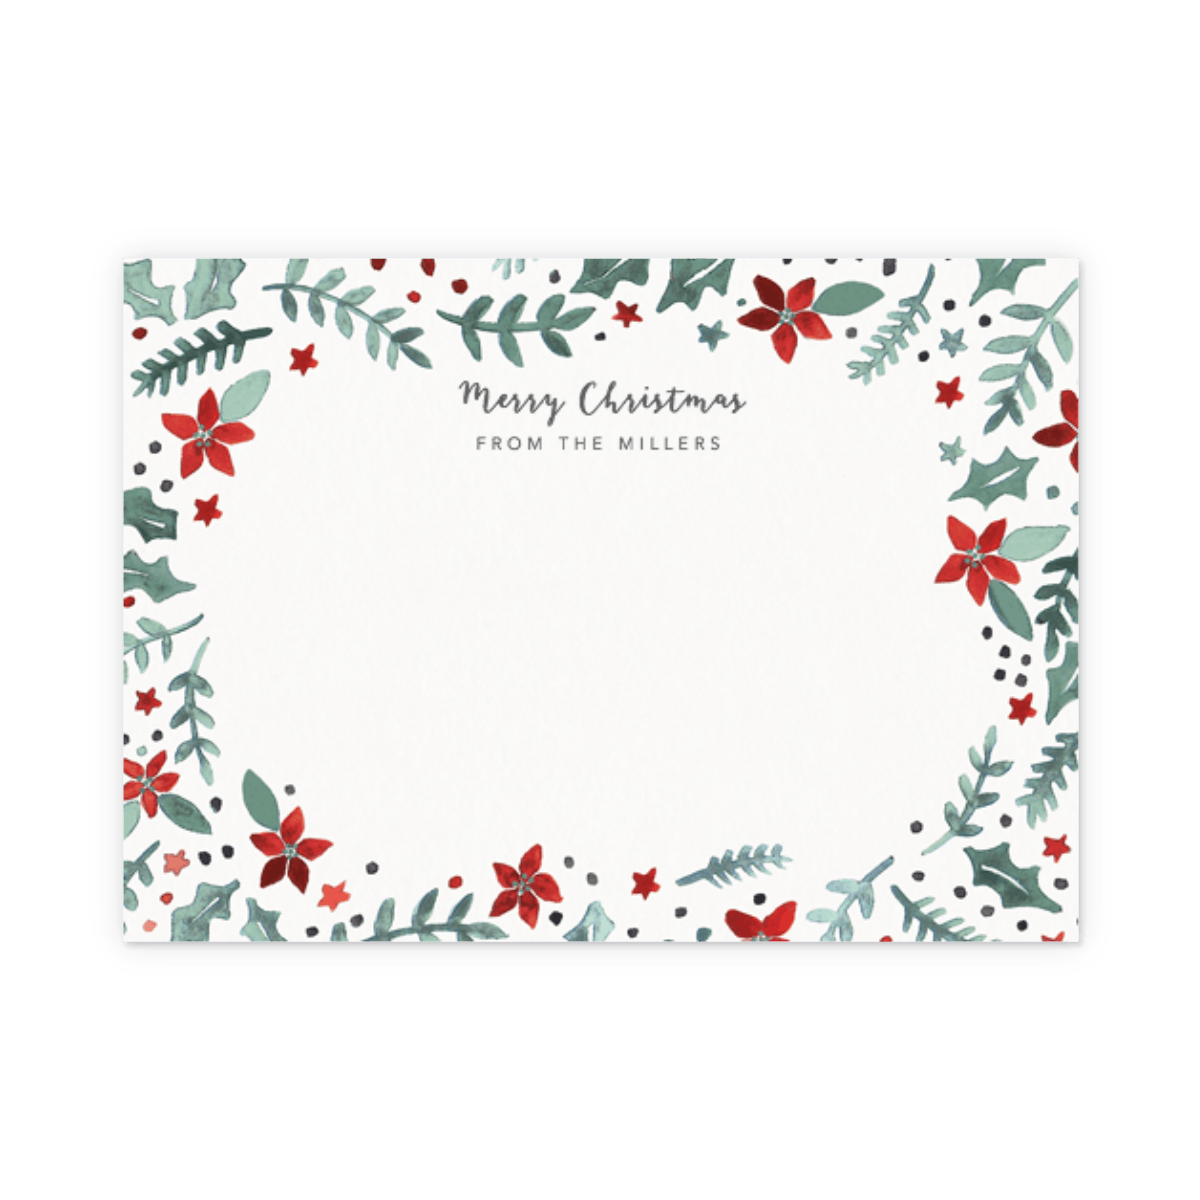 Https%3a%2f%2fwww.papier.com%2fproduct image%2f11789%2f10%2fpoinsettia scatter 2979 front 1475686369.png?ixlib=rb 1.1